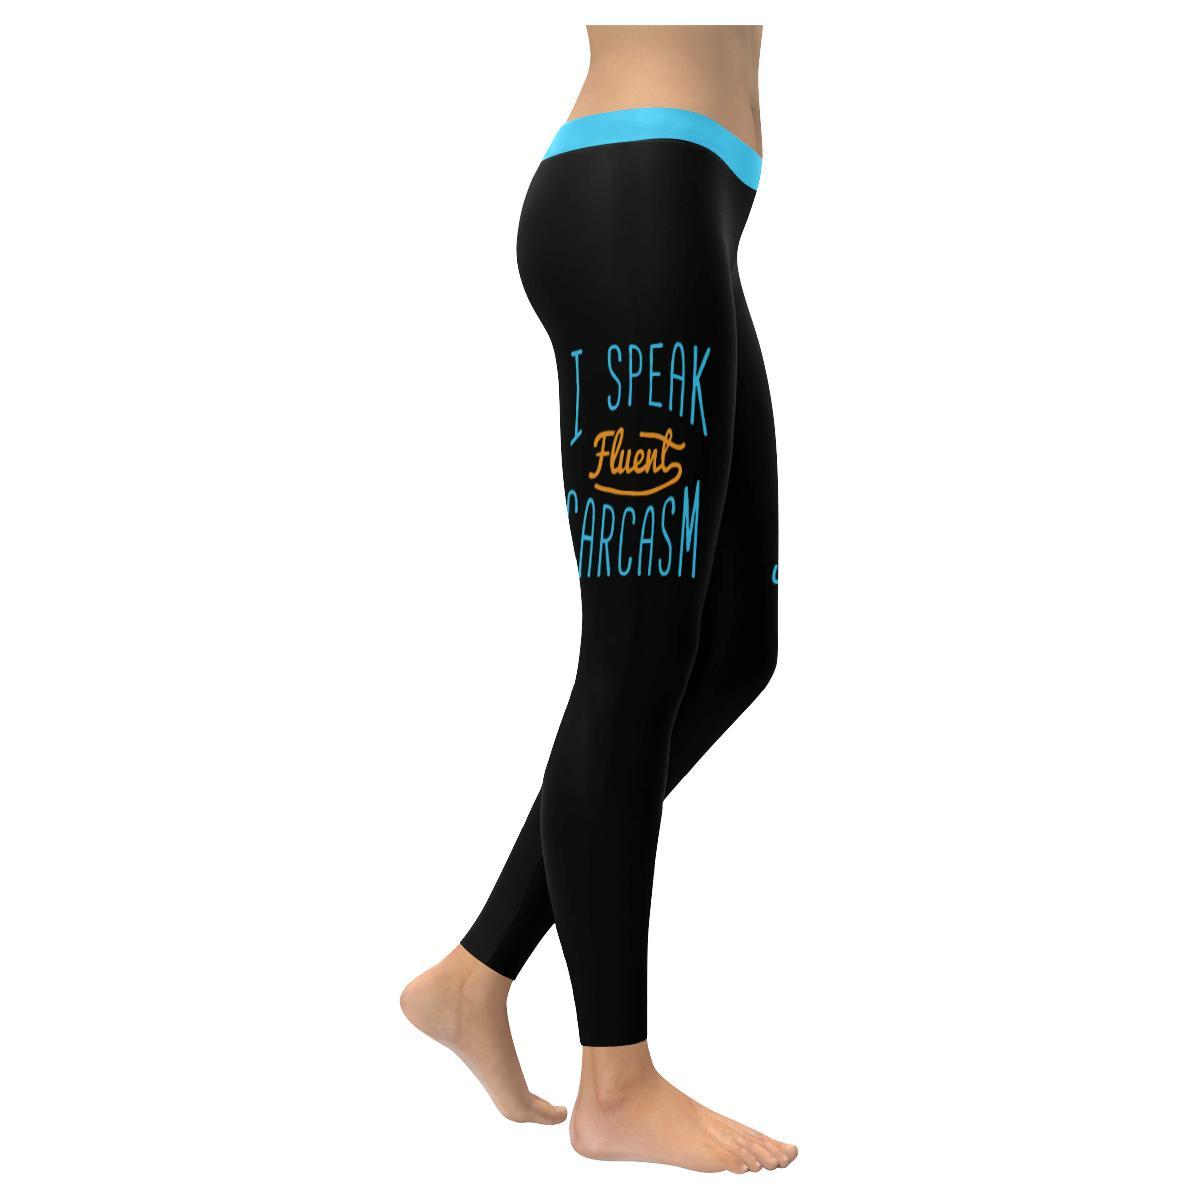 I Speak Fluent Sarcasm Soft Leggings For Women Cute Funny Sarcastic Gift Ideas-XXS-Black-JoyHip.Com